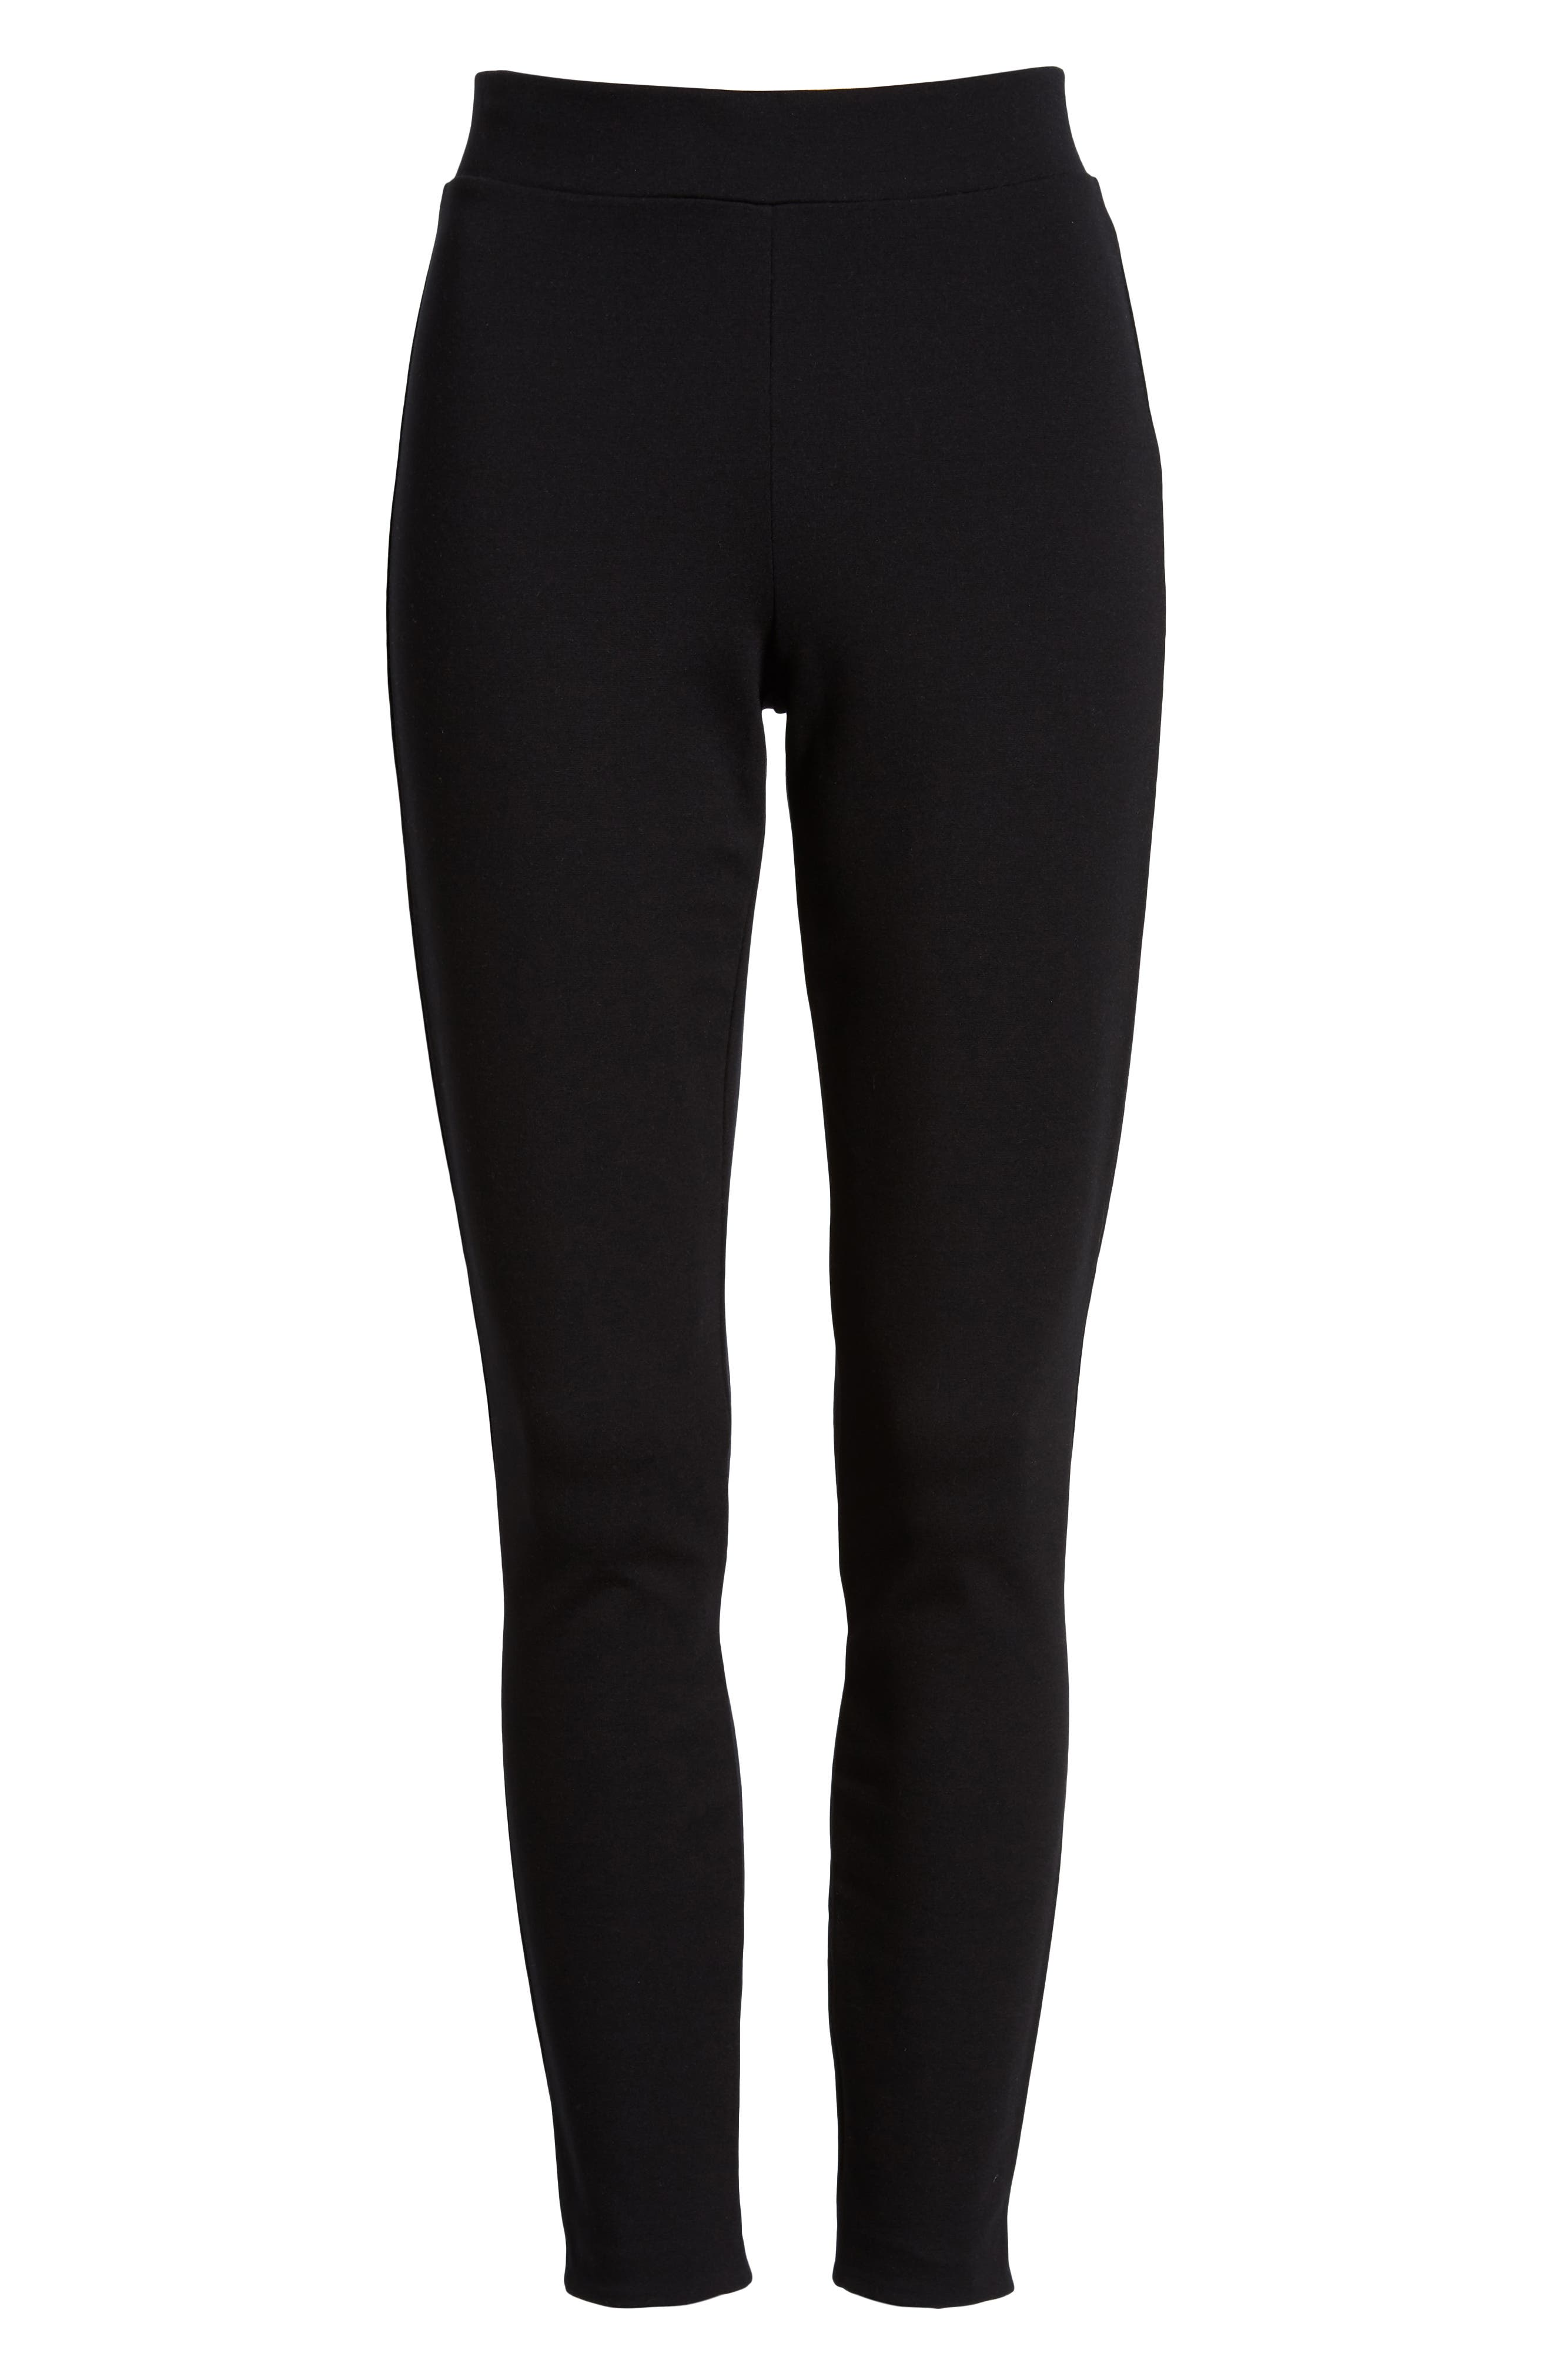 Grace Laced Detail Leggings,                             Alternate thumbnail 6, color,                             BLACK/ BLACK